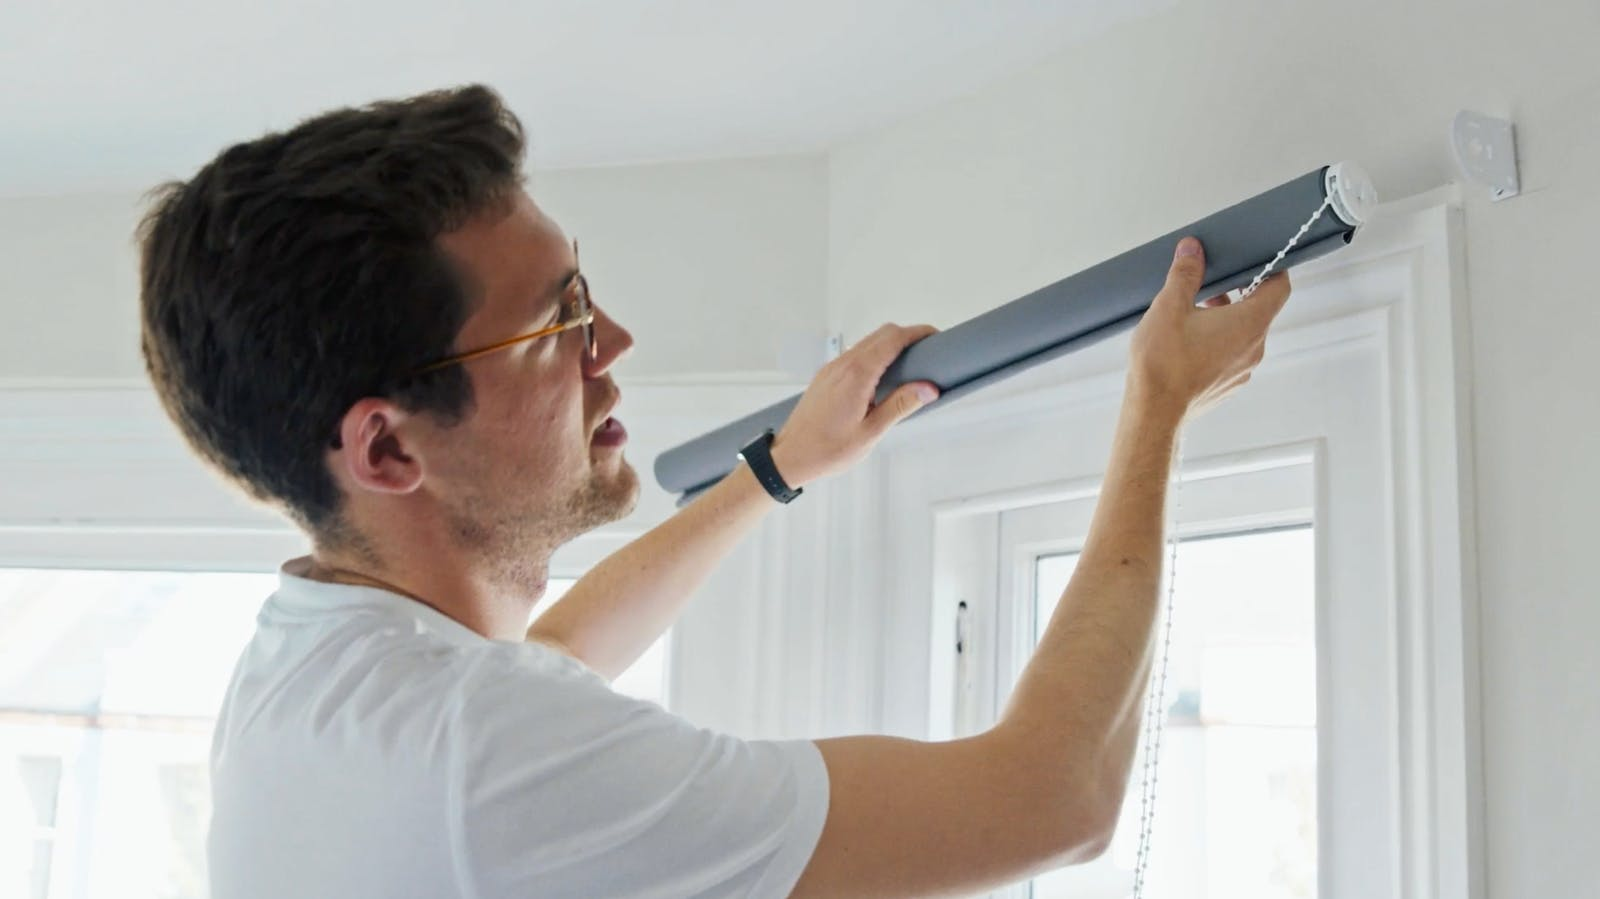 Man holding grey roller blinds in hand